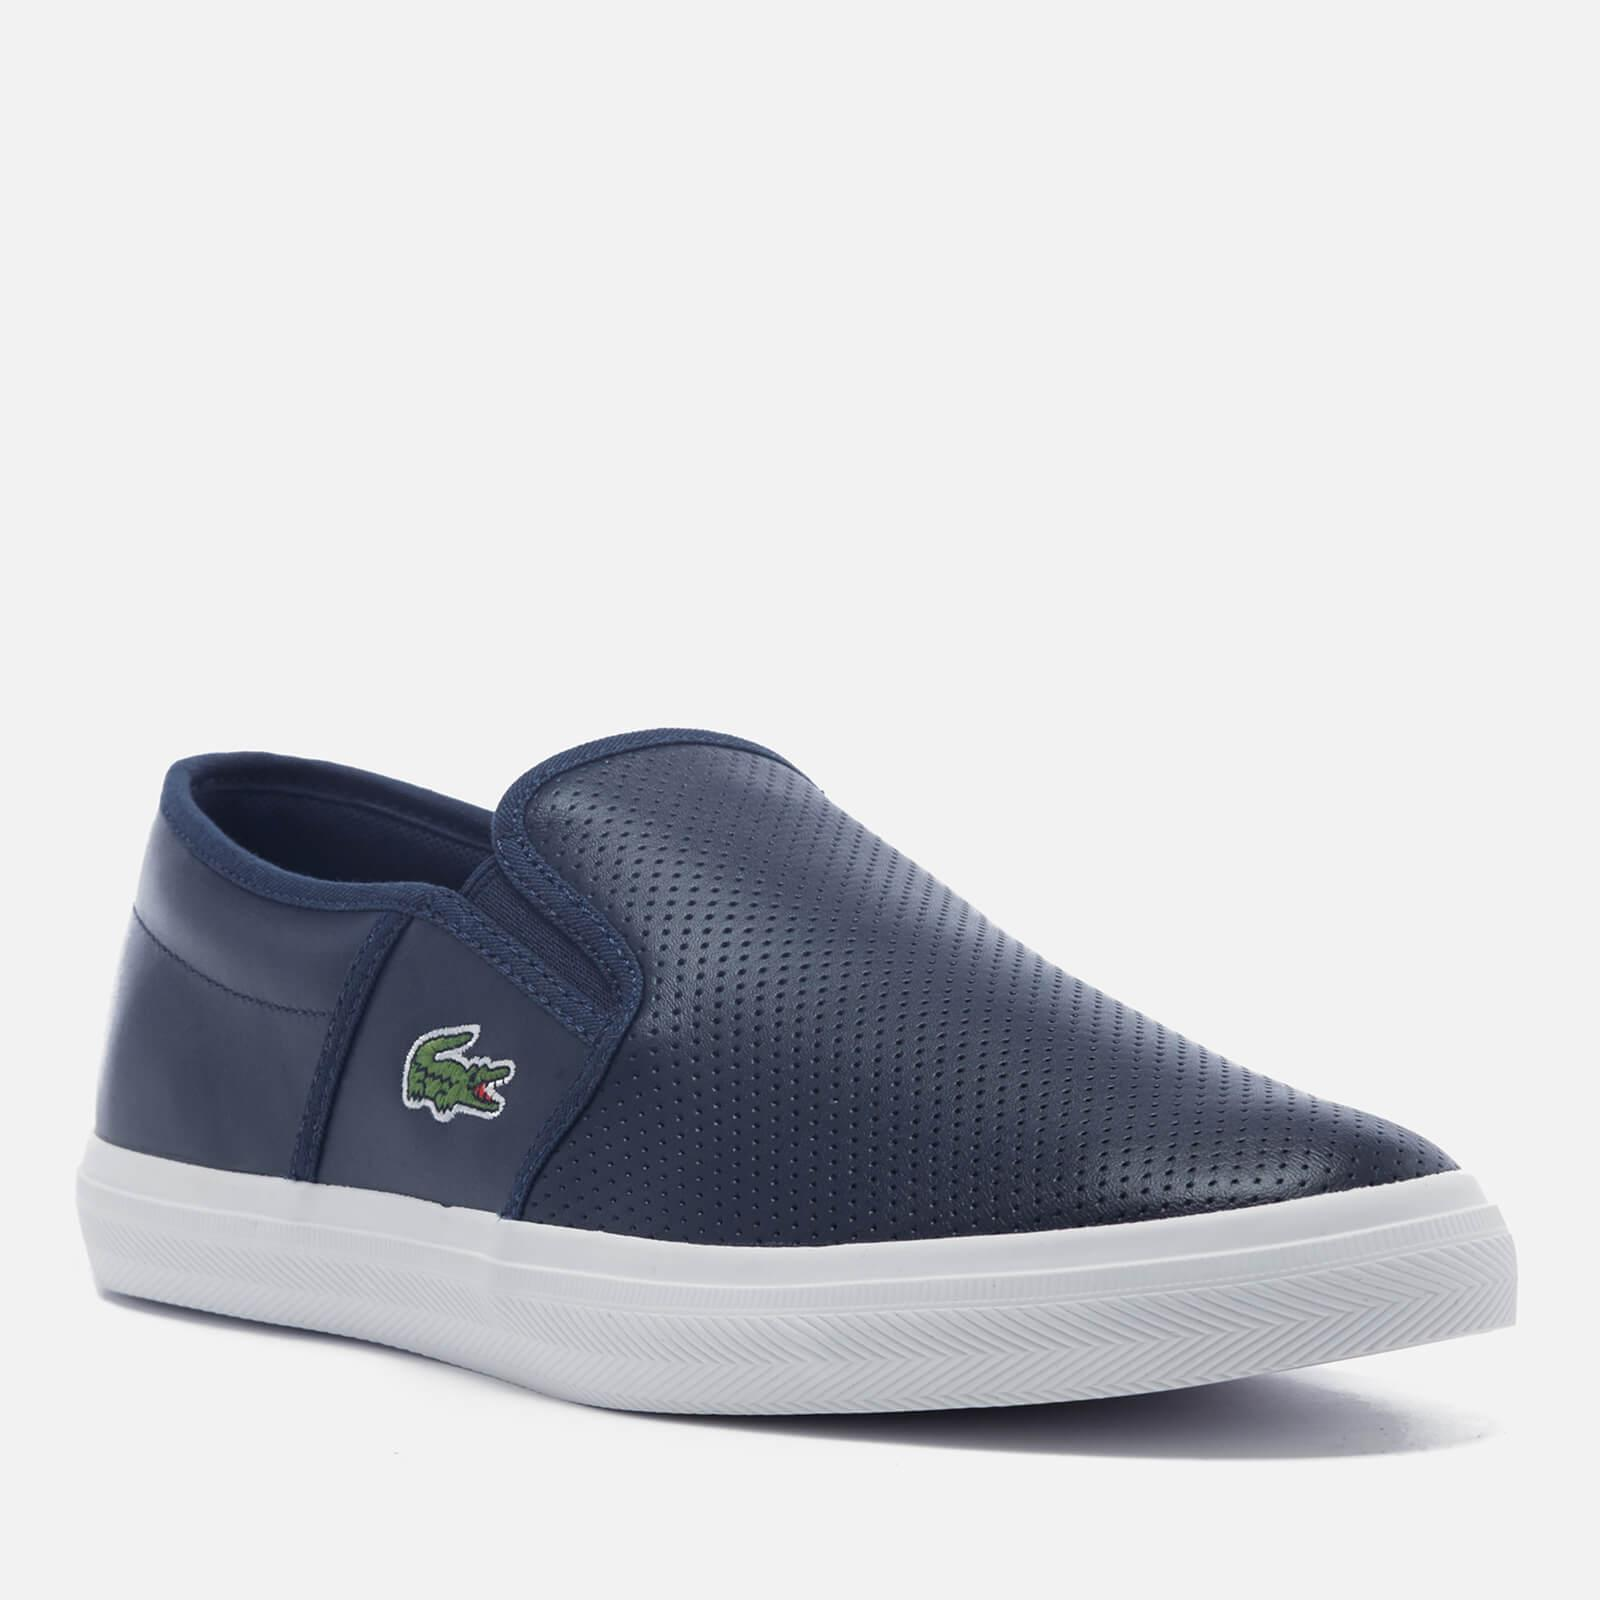 b7e469e4c8a27d Lacoste - Blue Gazon Bl 1 Leather Slip-on Trainers for Men - Lyst. View  fullscreen